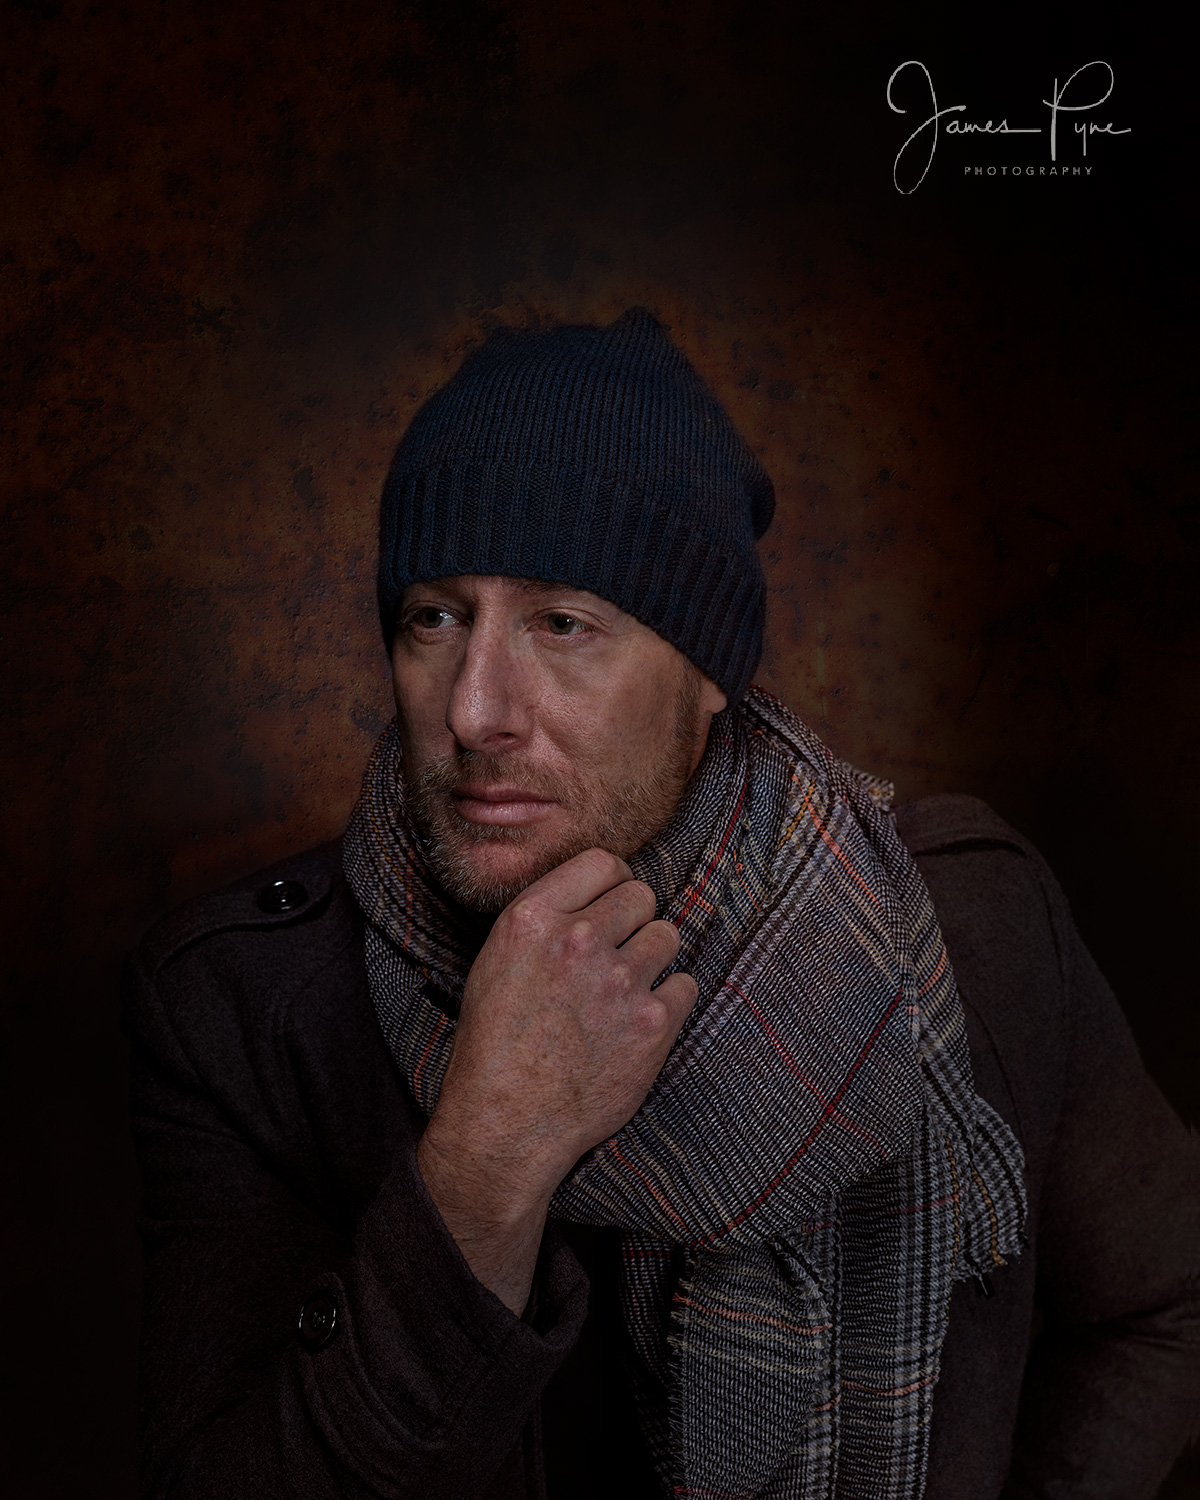 James Pyne Photography Melbourne, Frankston, Somerville and Mornington Peninsula Portrait Photograher